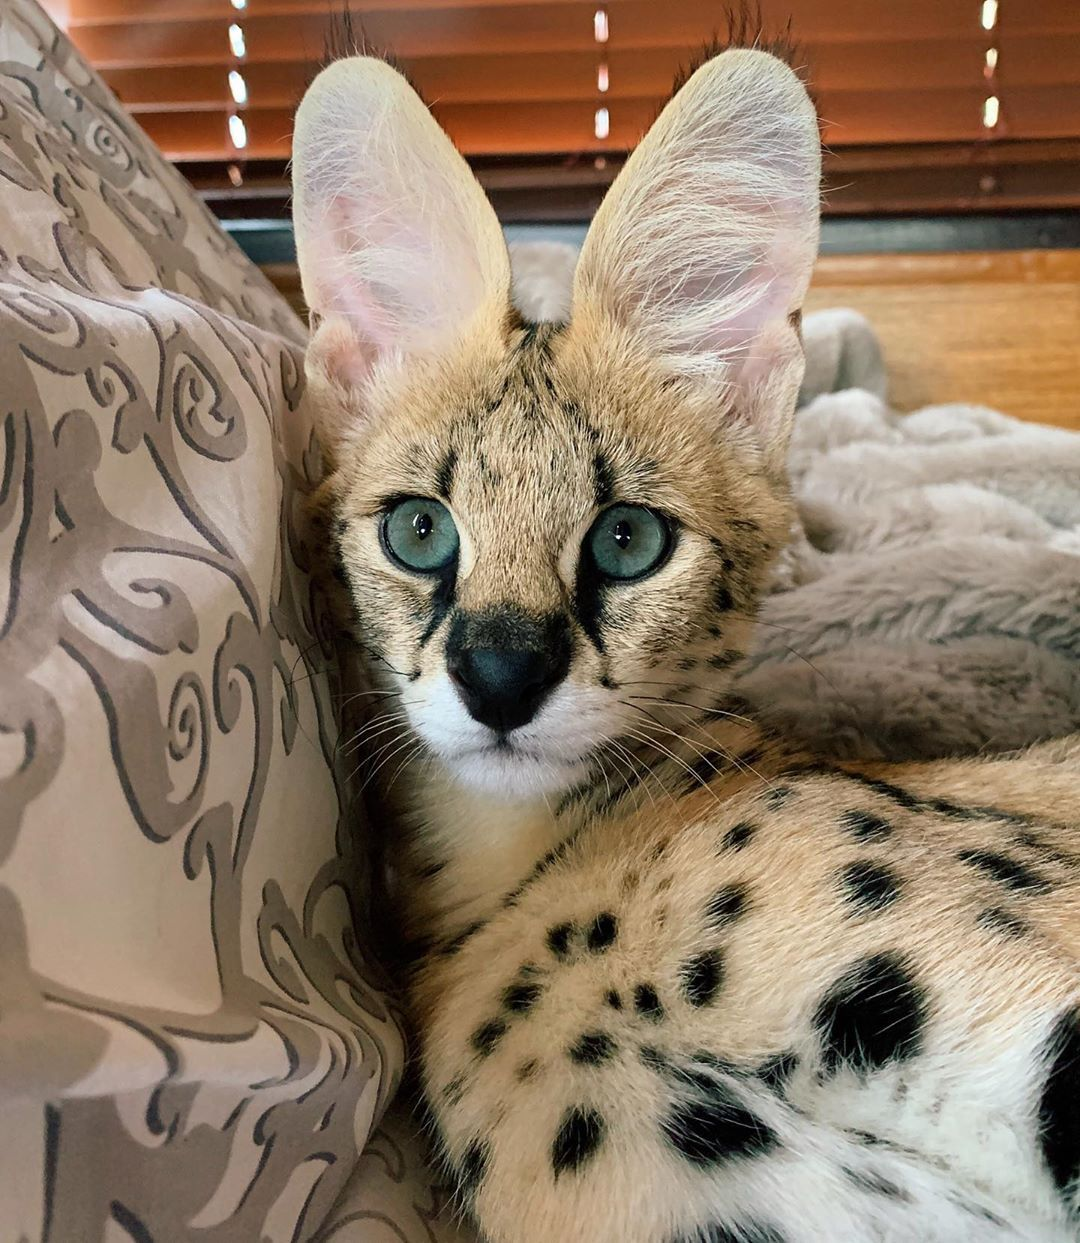 1 Moy Aresei 52 Sxolia Serval Family Sto Instagram Serval Serval Servalcat Kotiki Kitten In 2020 Serval Pet African Serval Cat Wild Cats